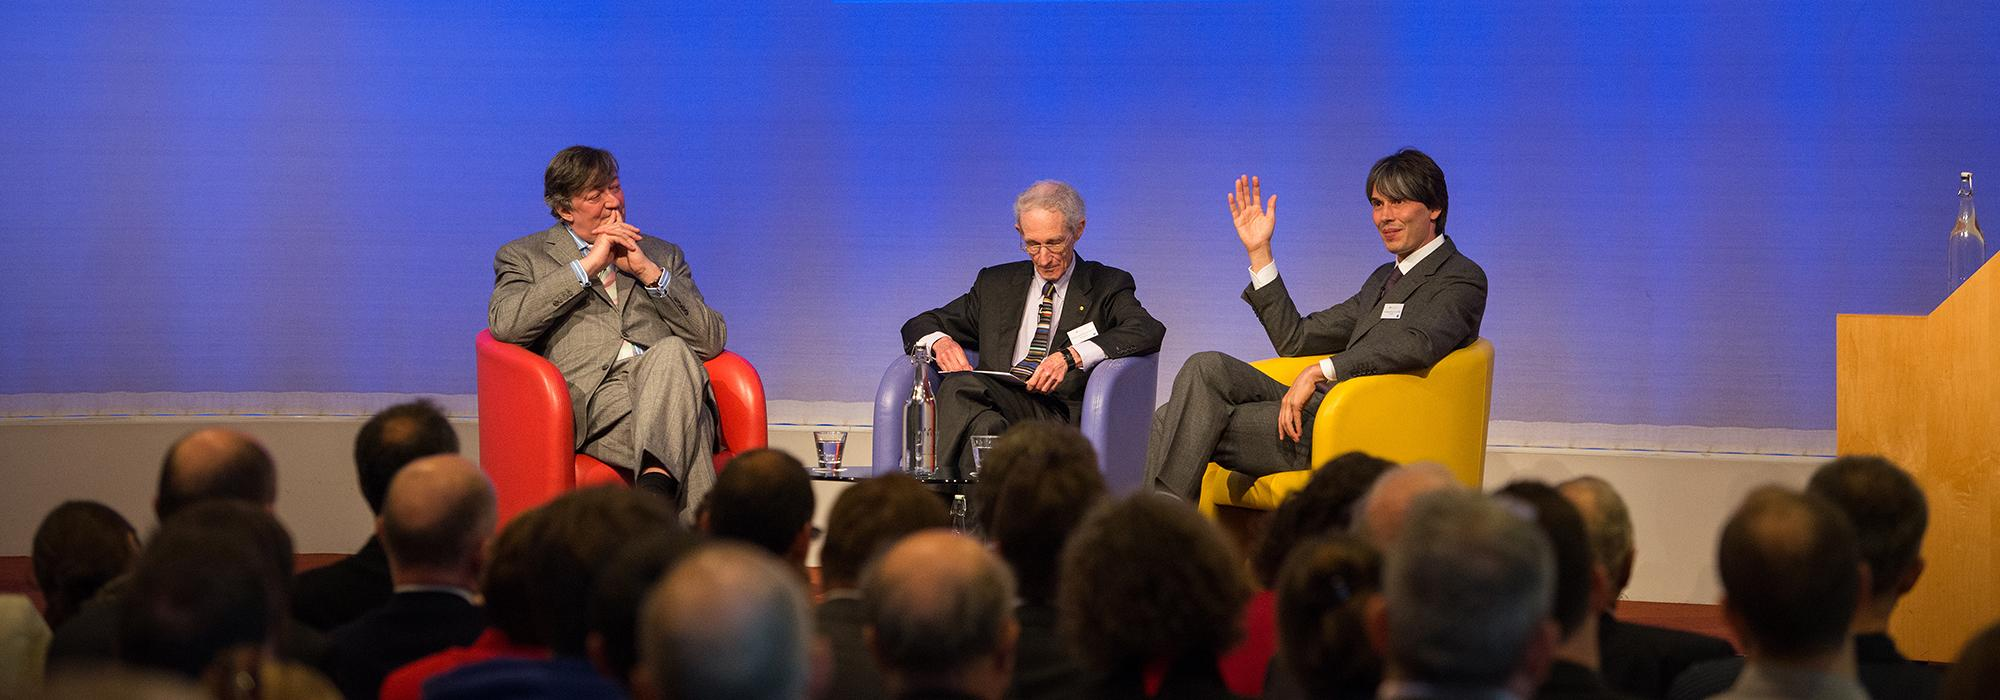 Stephen Fry, Robert May and Brian Cox in conversation at the Royal Society - Photo: © John Cairns - www.johncairns.co.uk